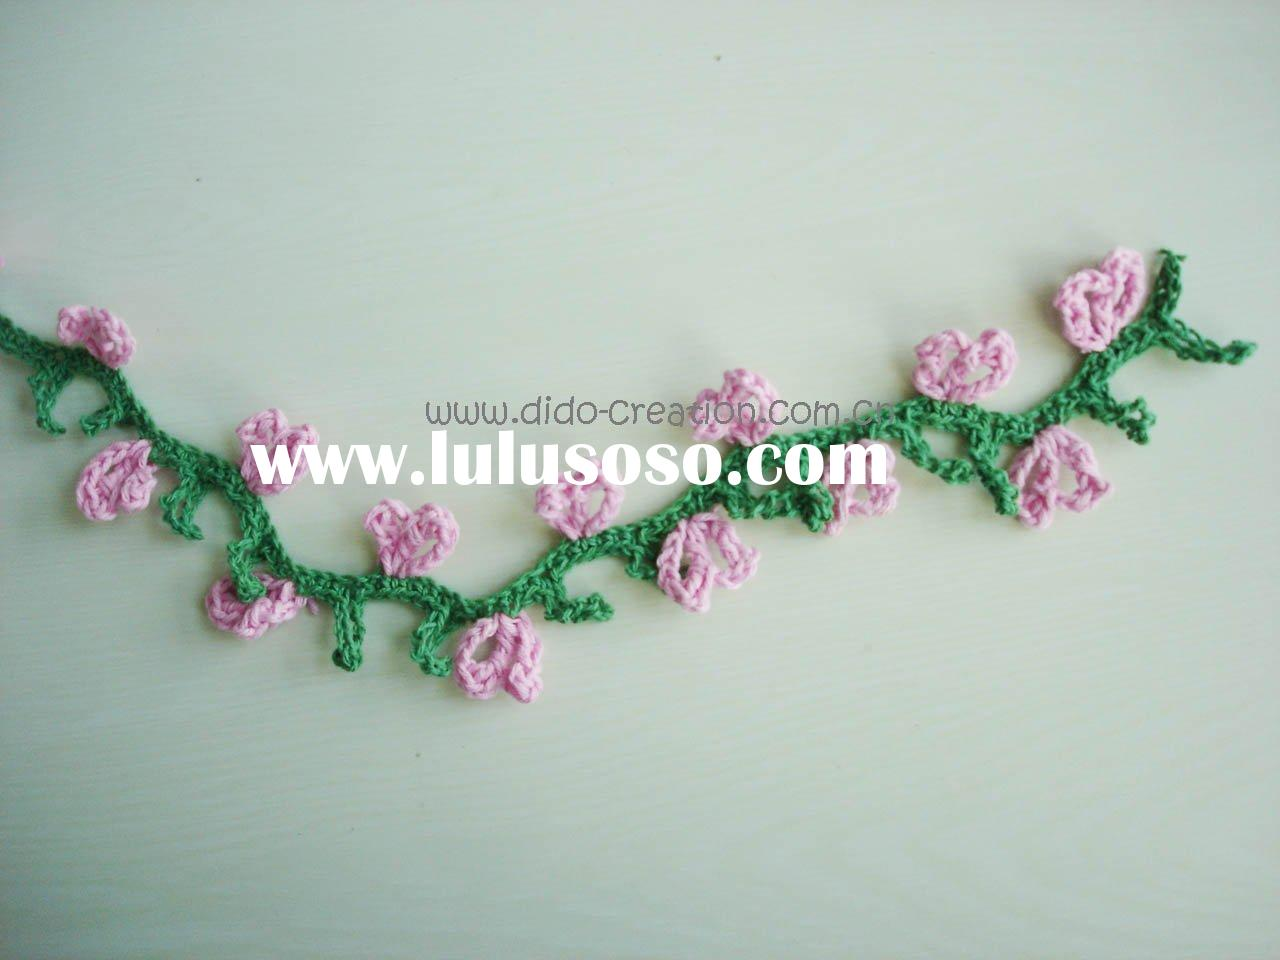 RB01004  Handmade Crochet Fashion Accessories Trimming edging